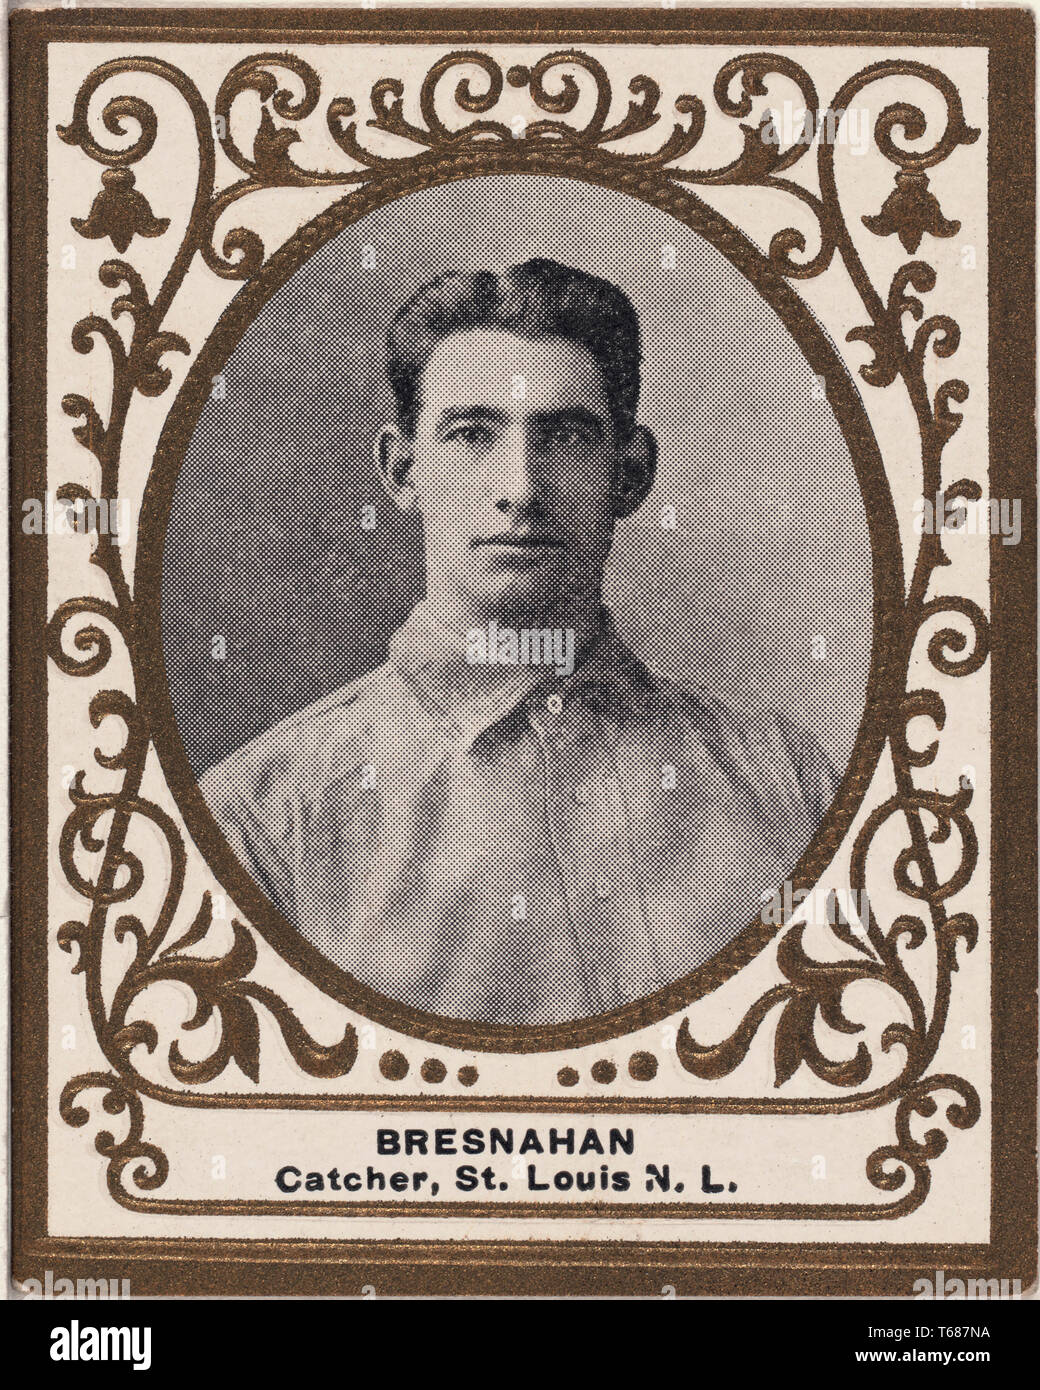 Roger Bresnahan, St. Louis Cardinals, Baseball Card Portrait, American Tobacco Company, 1909 - Stock Image